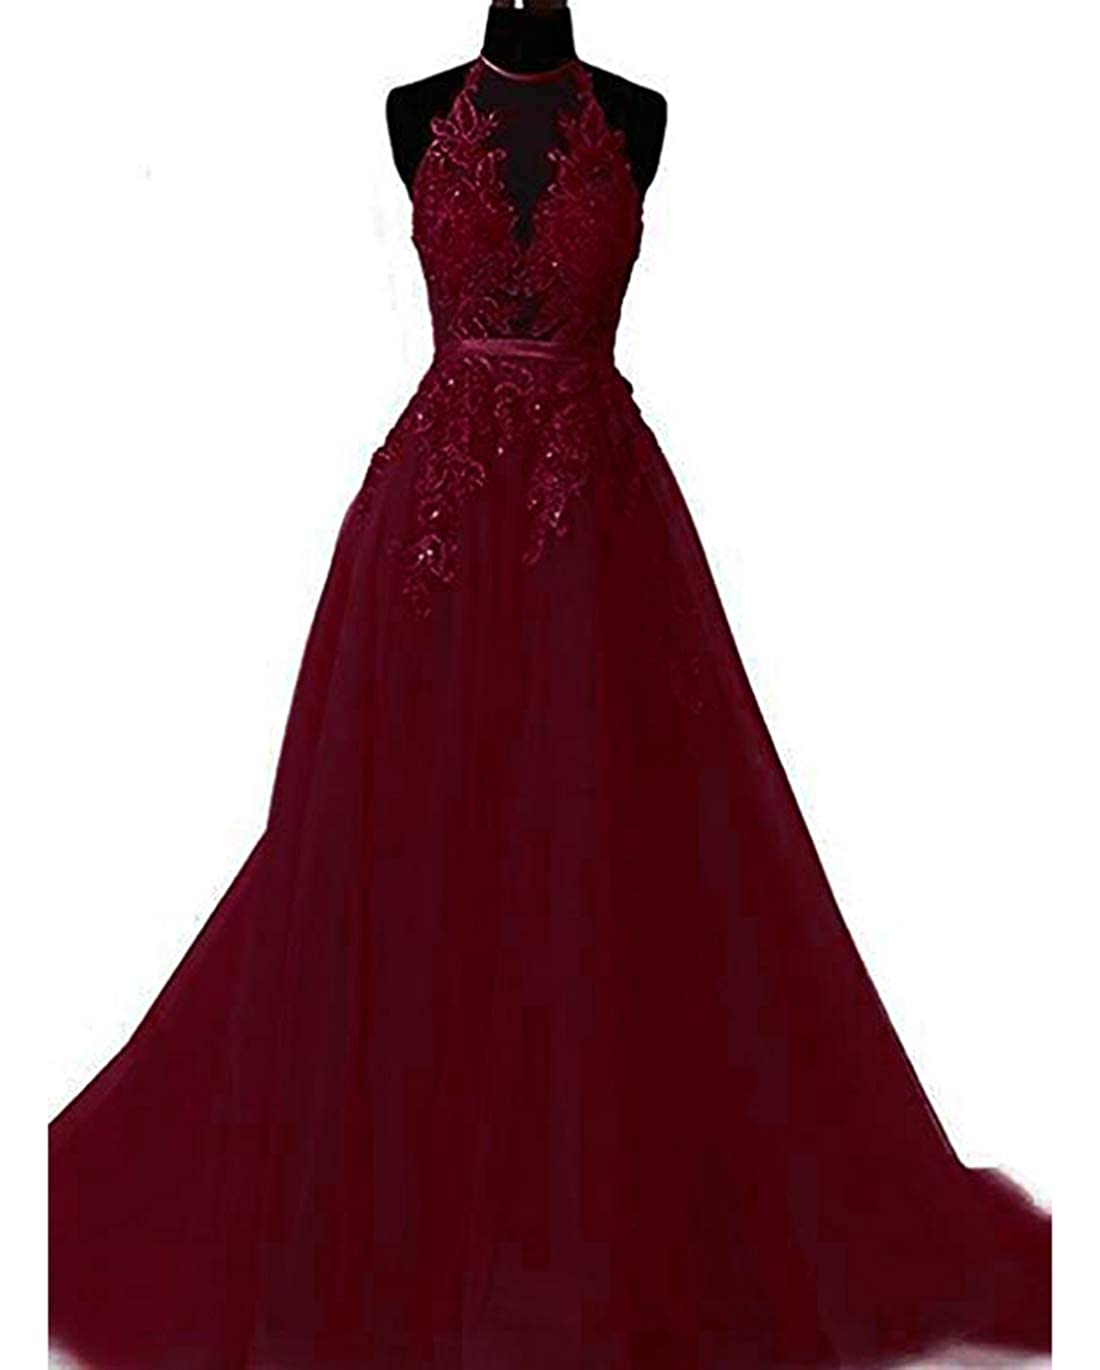 Burgundy olise bridal Sexy Women's Halter Prom Dresses Long 2019 Appliques Backless Evening Fomral Gowns Real Photo